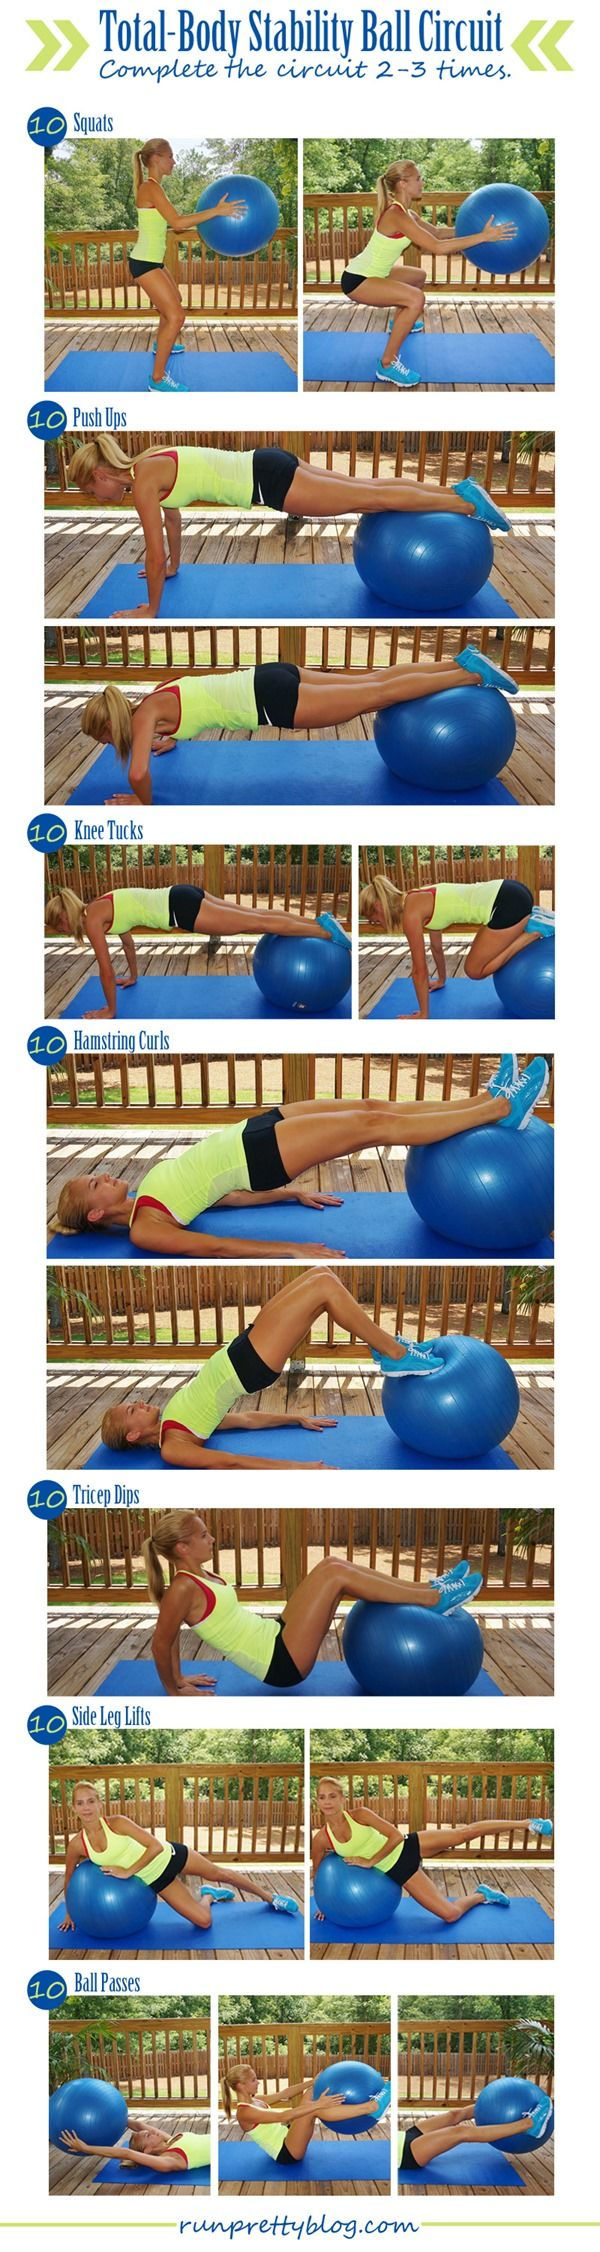 Total Body Stability Ball Circuit Workout Via Run Pretty Health Full With Weights Workouts Pinterest